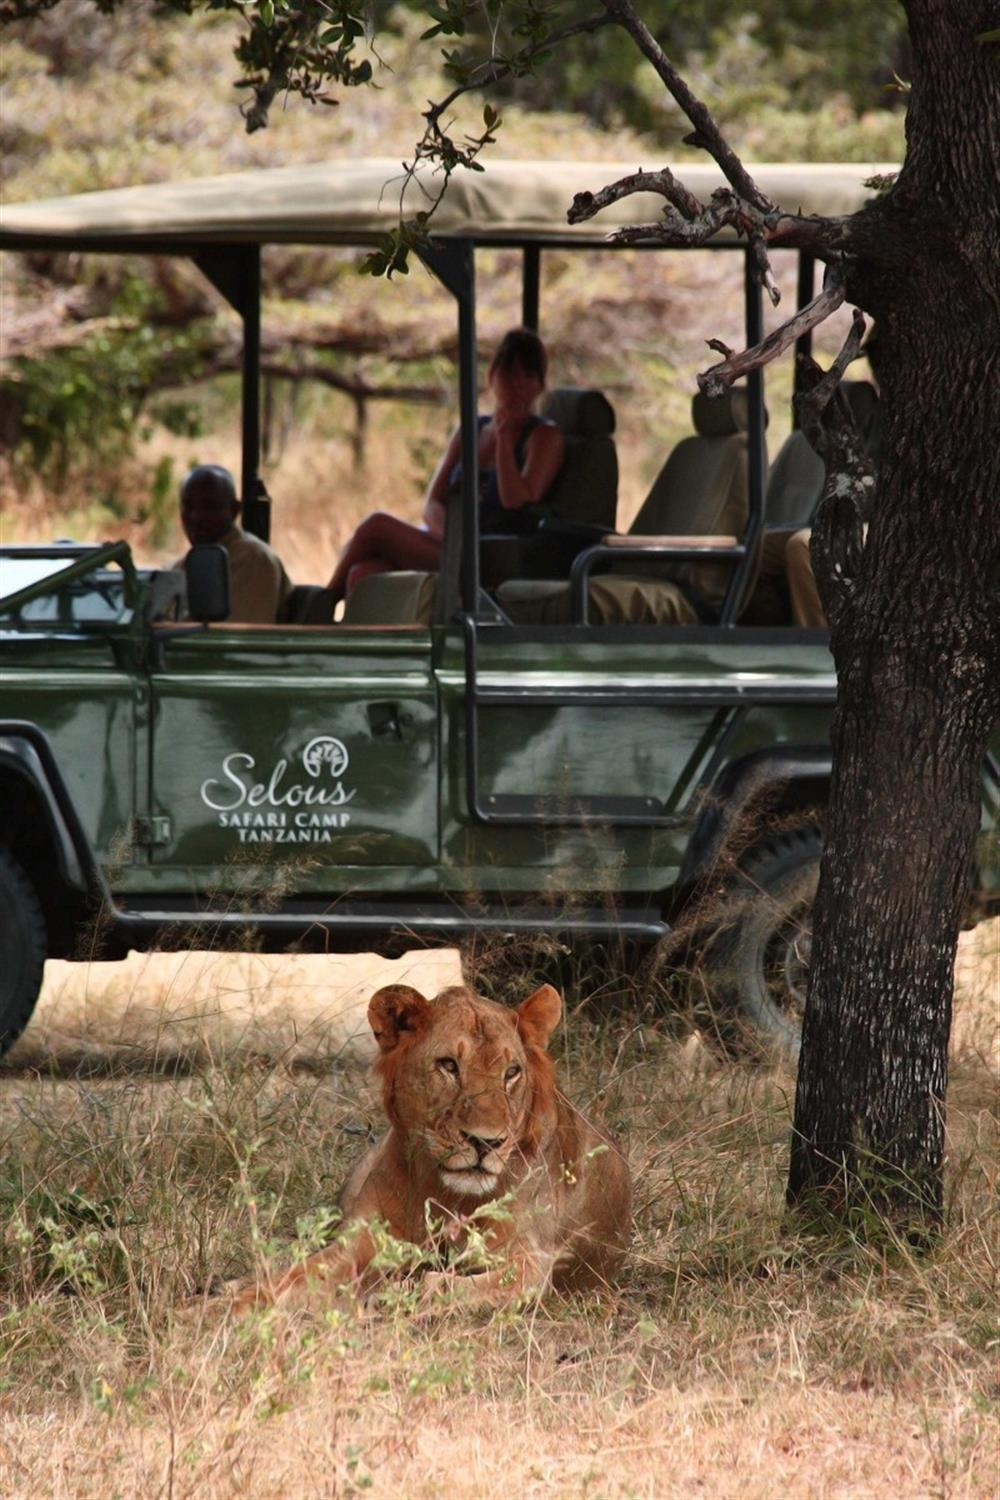 Siwandu (previously Selous Safari Camp)